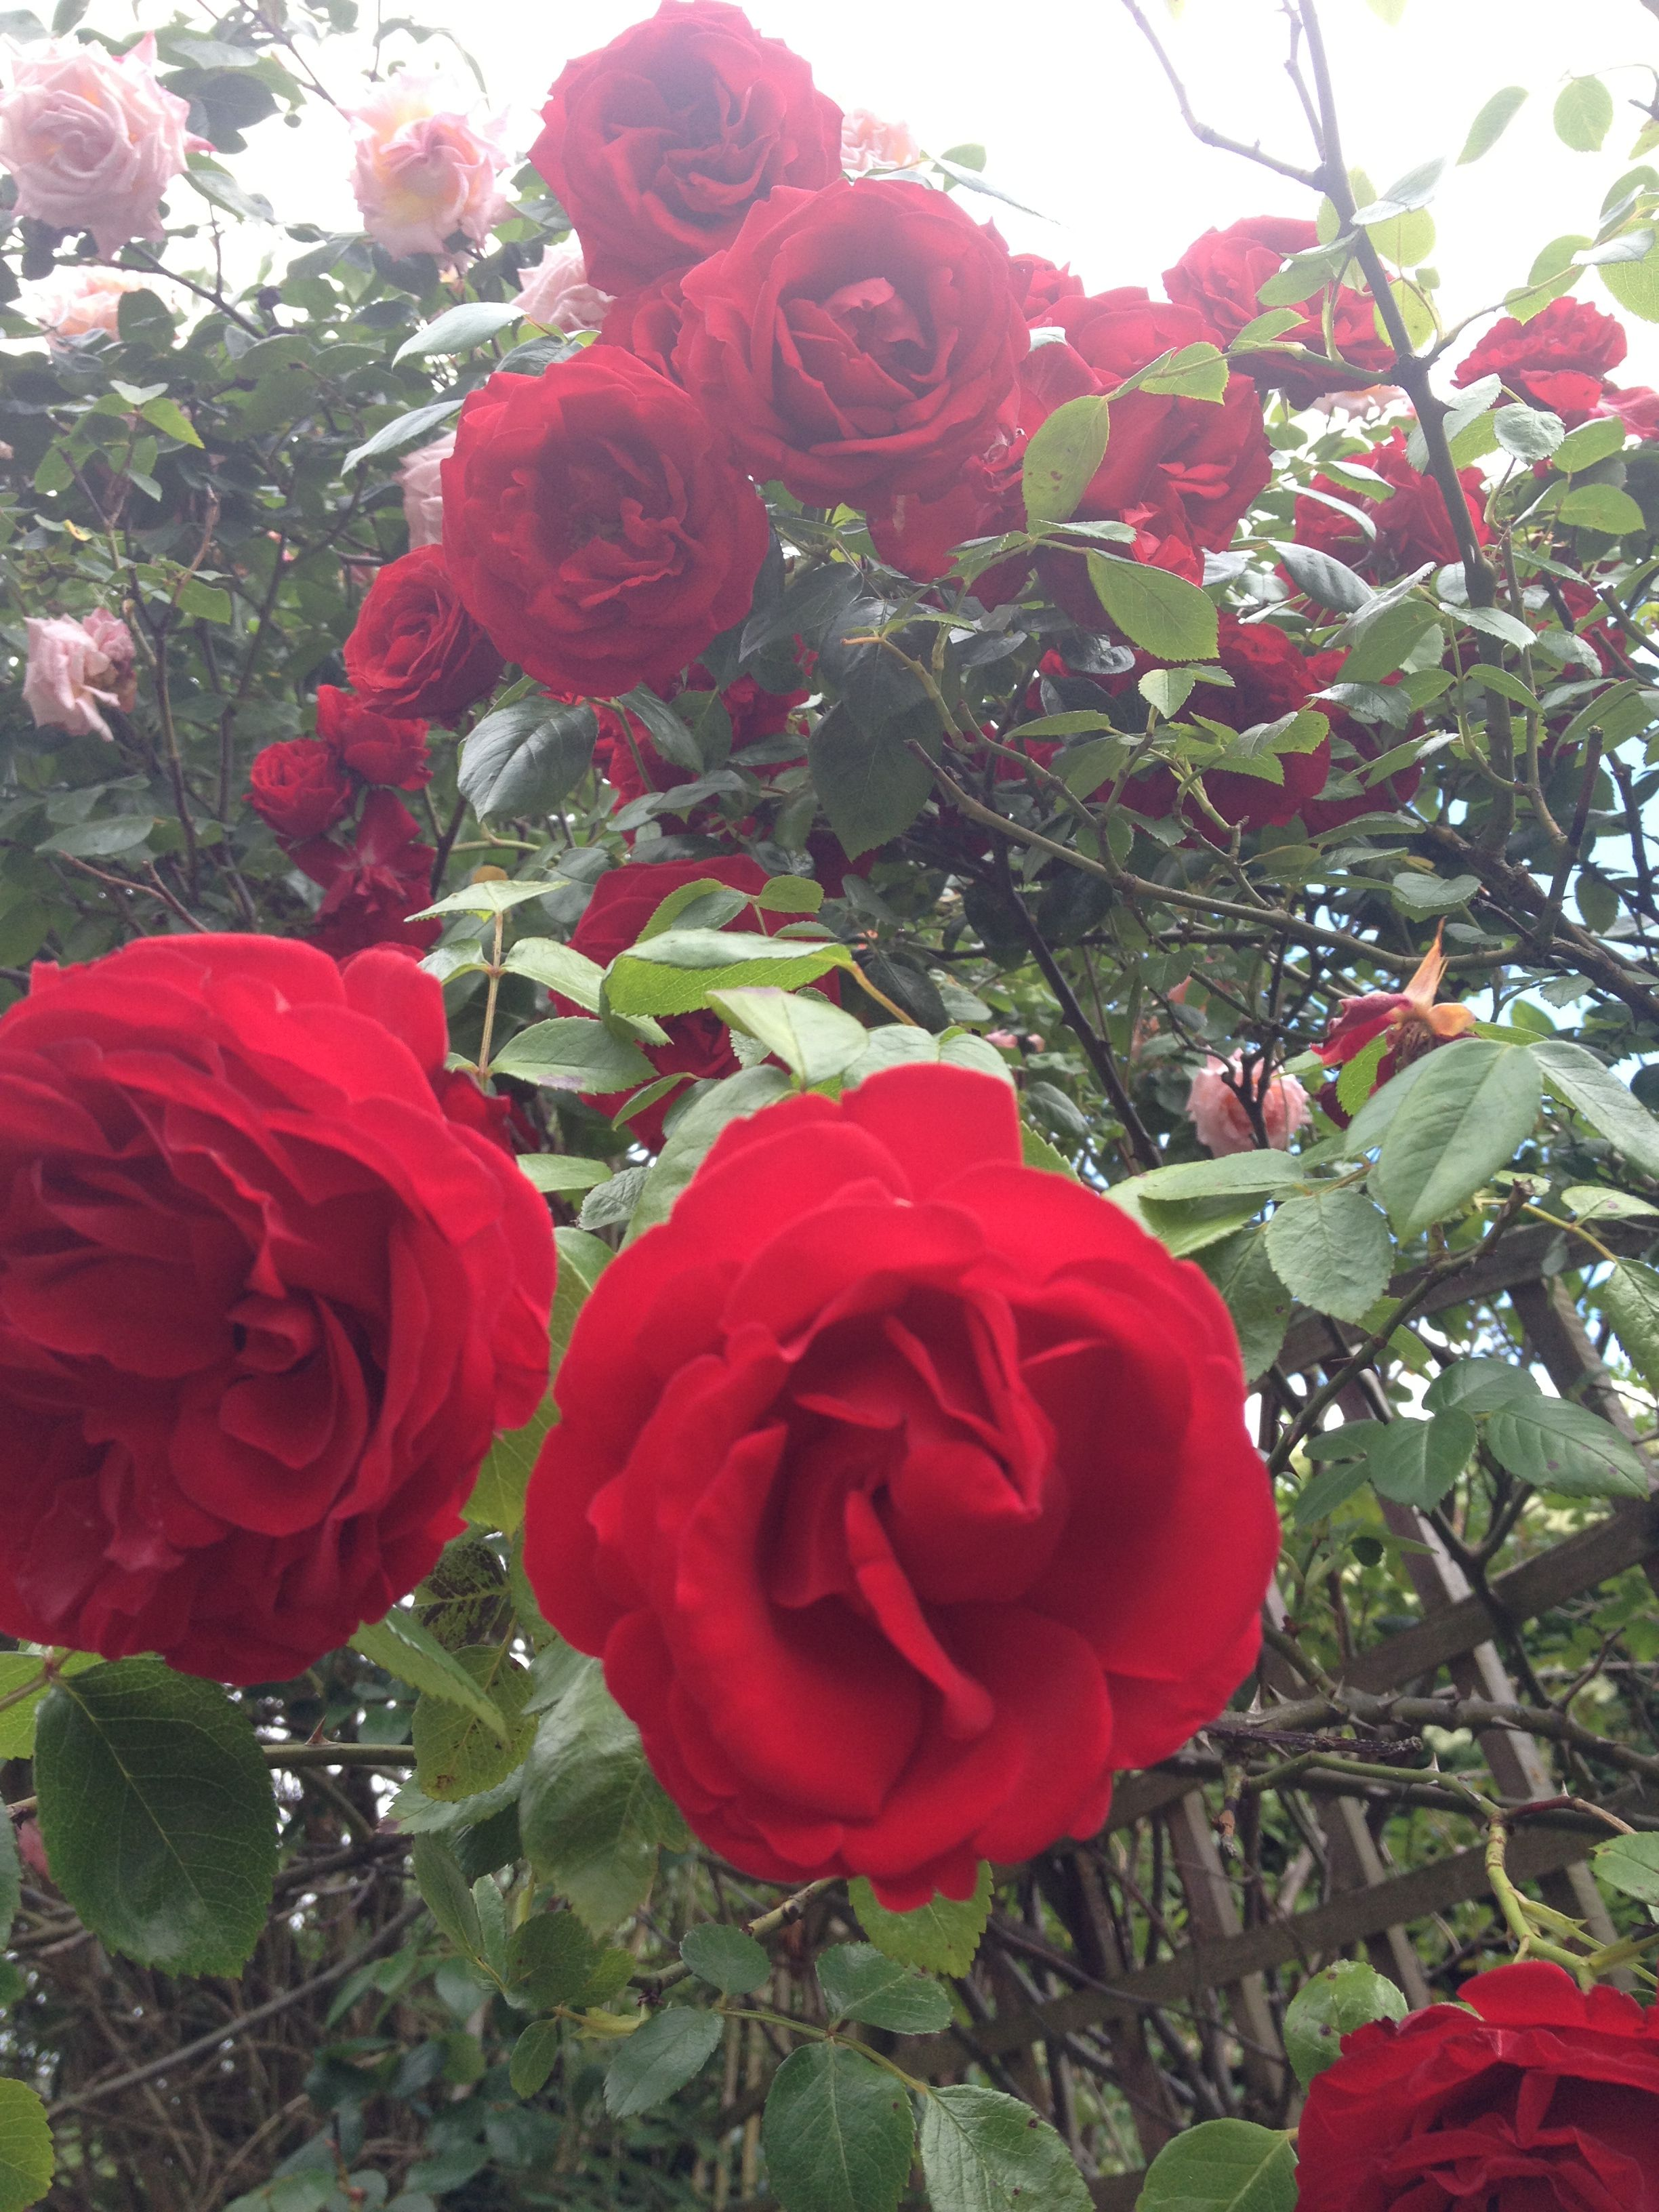 IMG_5001- roses red